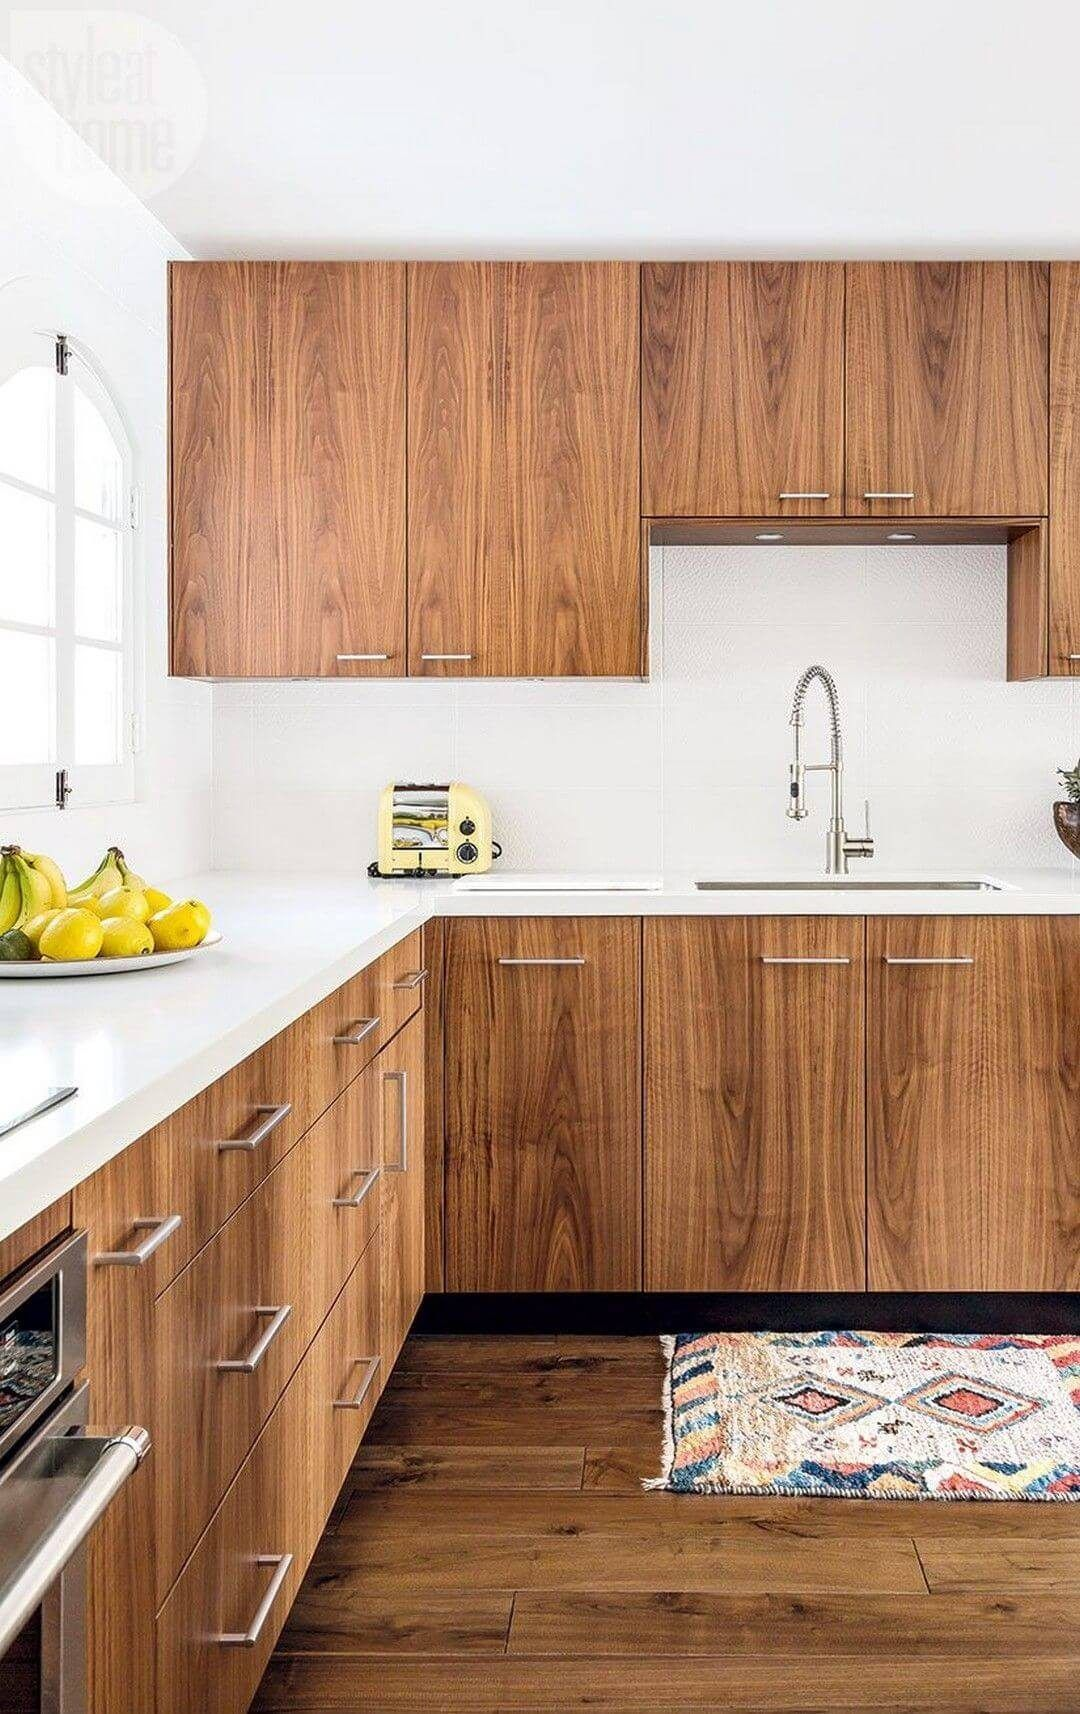 25 Mid Century Modern Kitchen Ideas To Beautify Your Cooking Area - 07Deb97047Aa811E0Ee19D1Fd2Ebe2D0